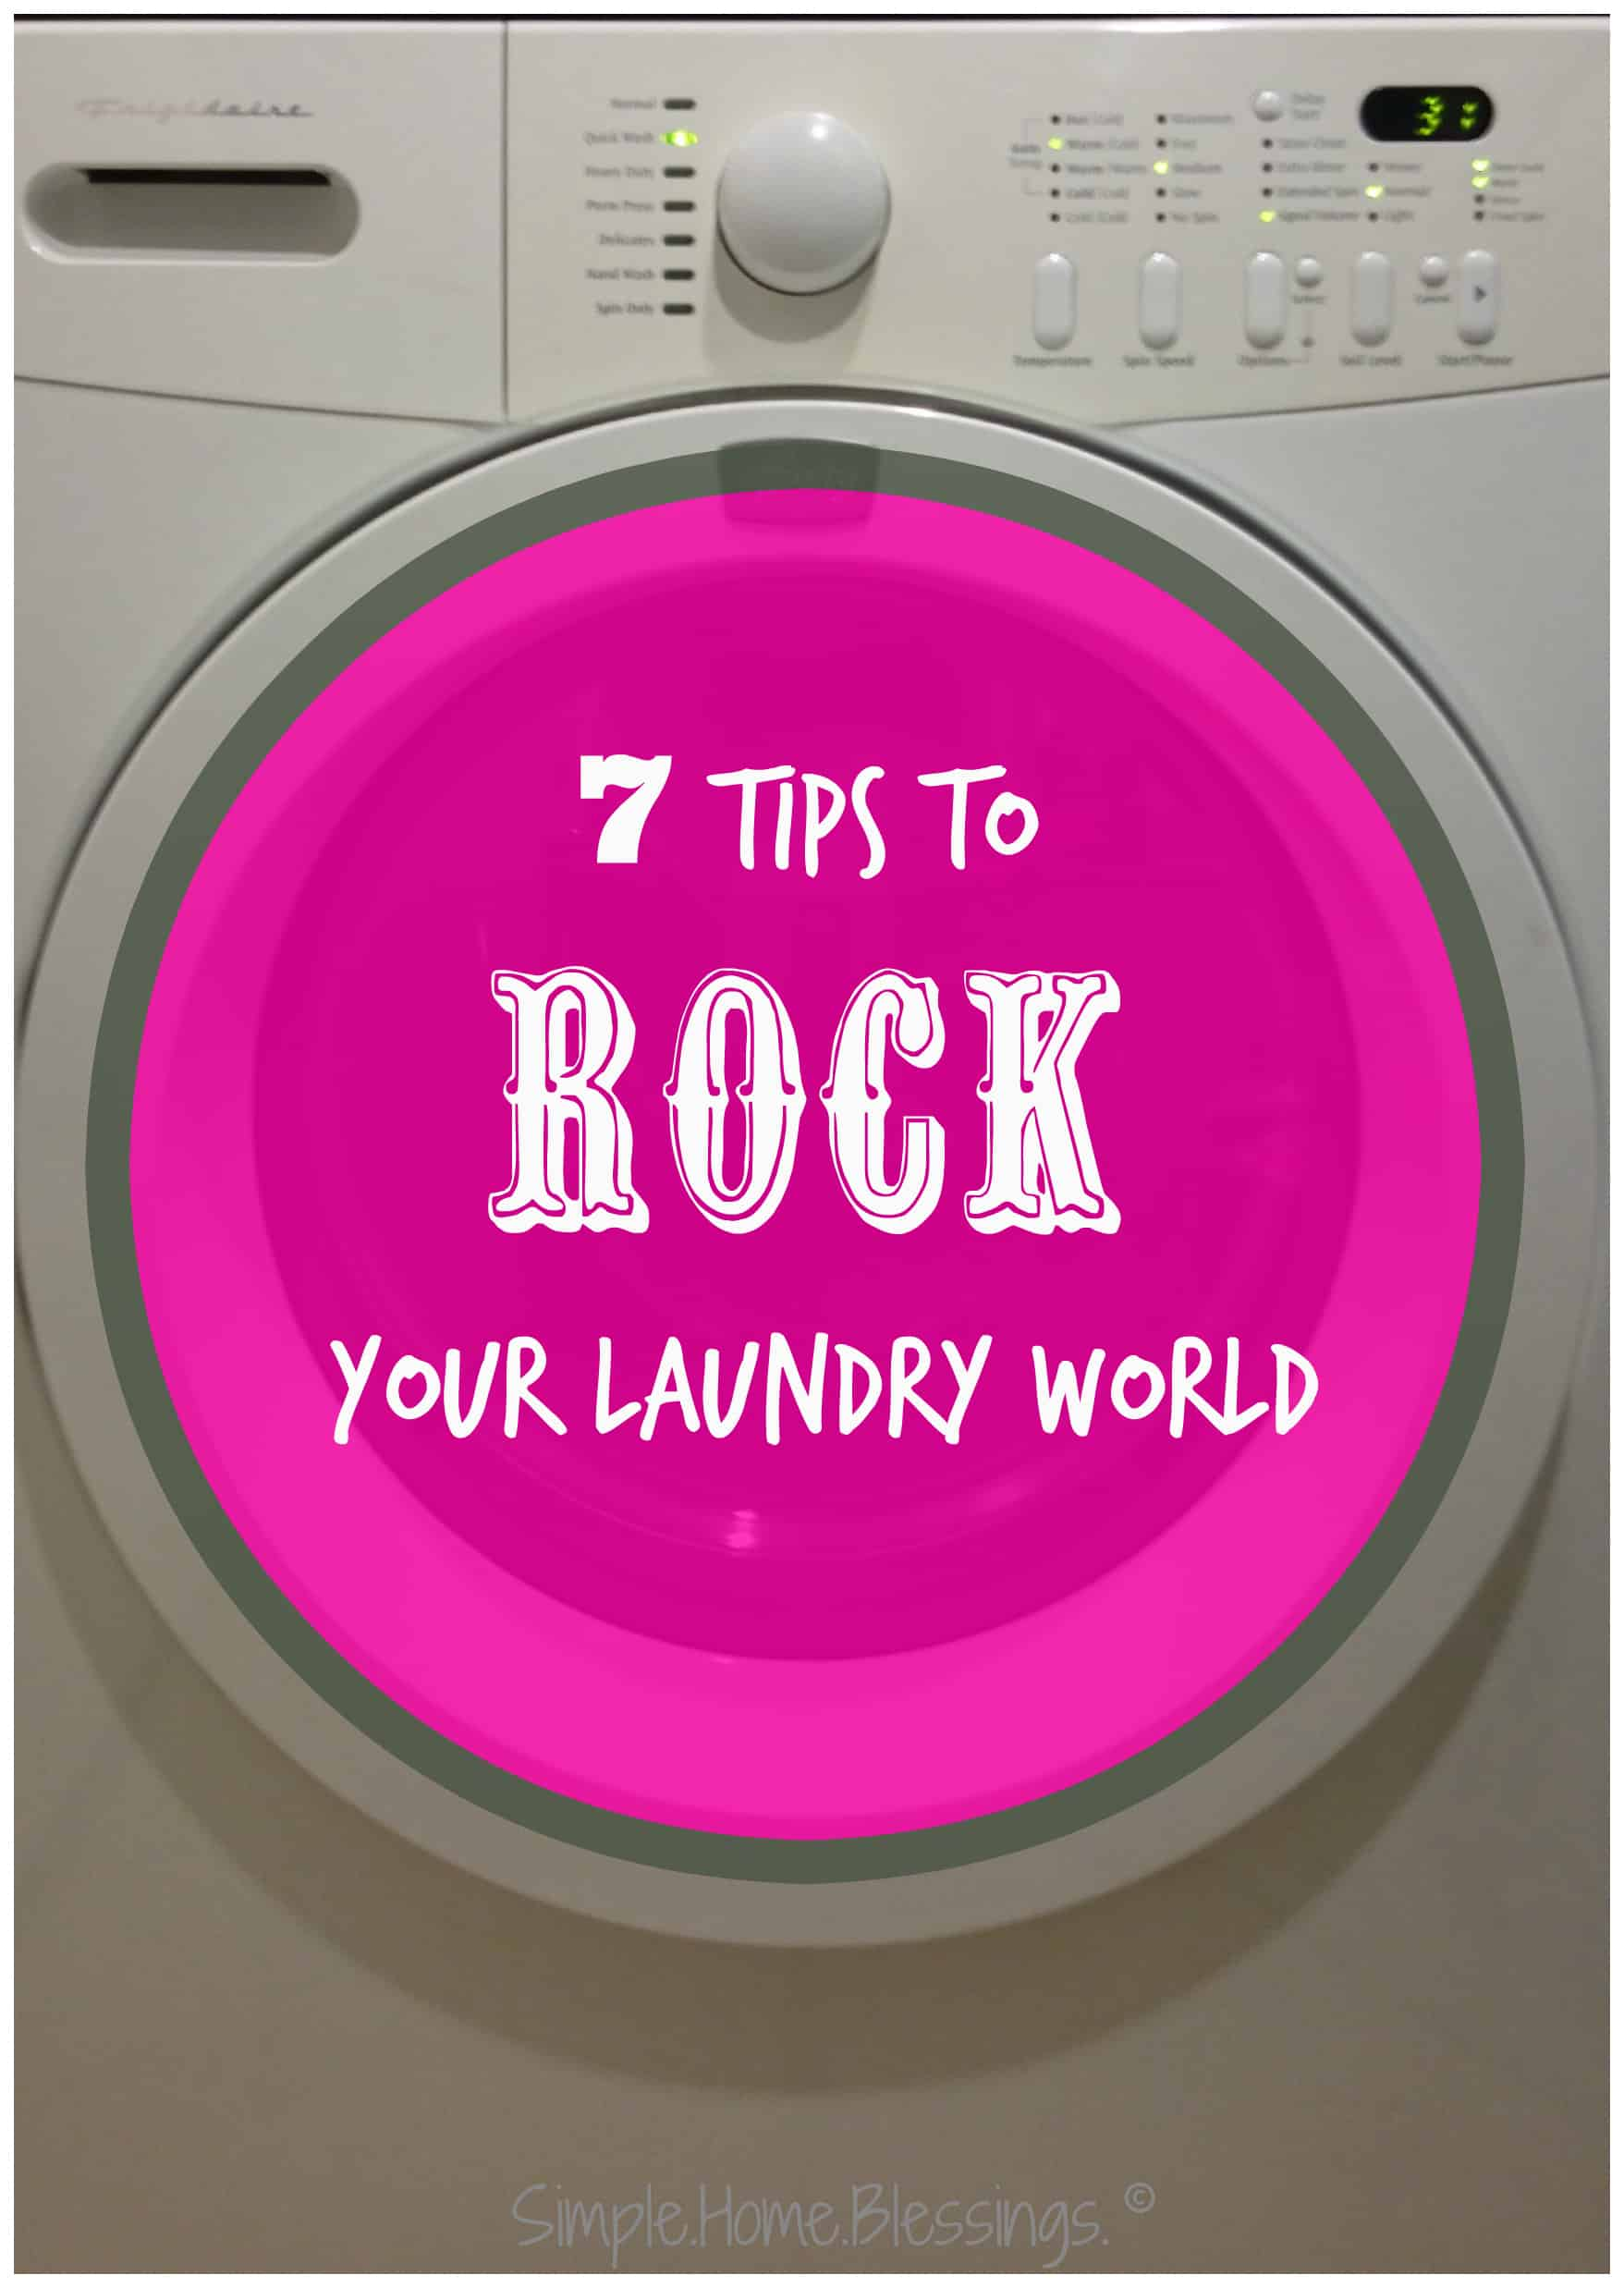 simple laundry tips to save time and money